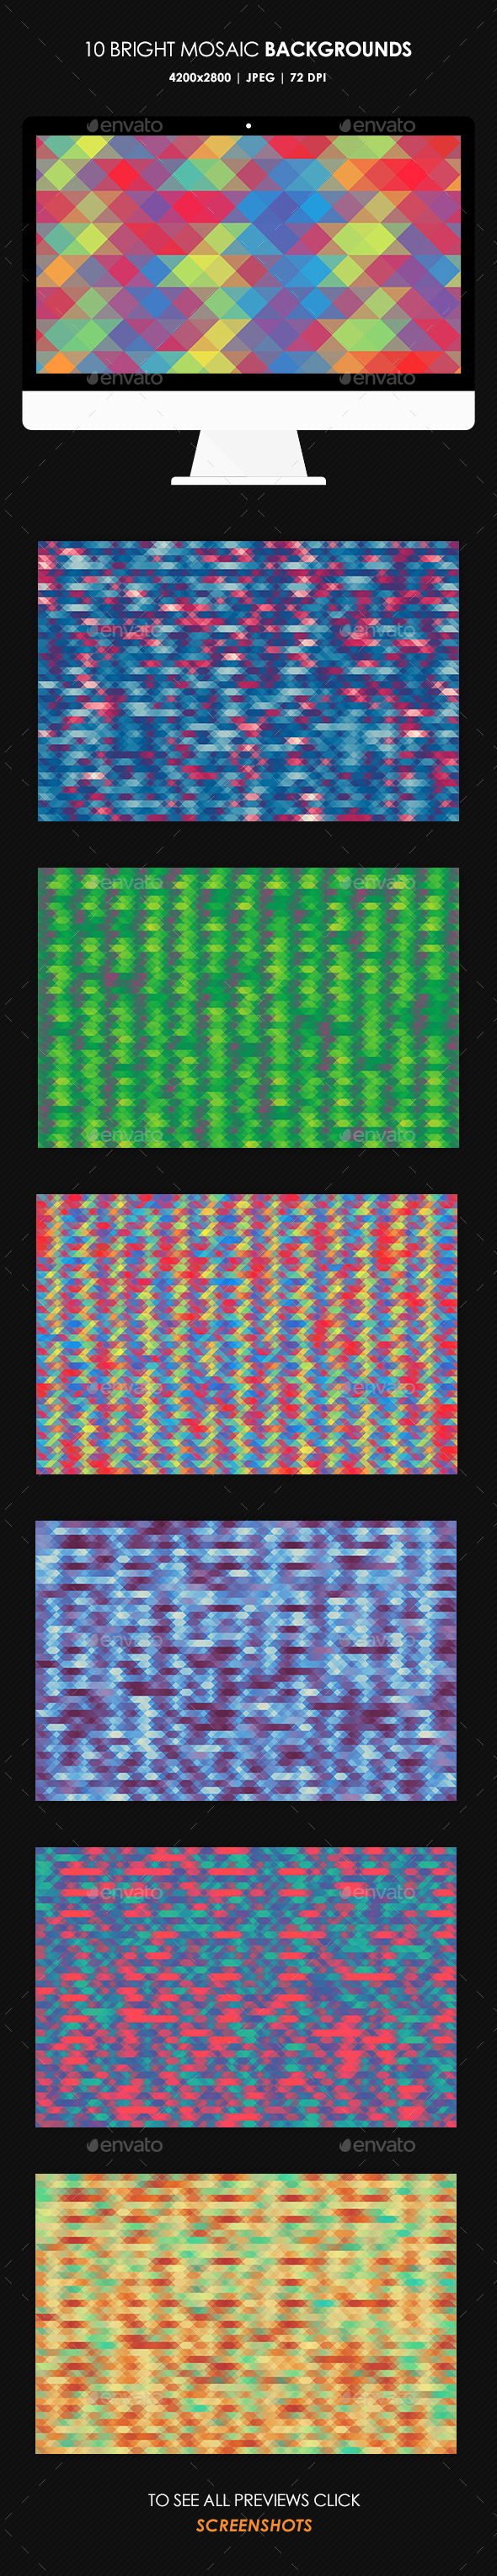 Bright Mosaic Backgrounds - Patterns Backgrounds